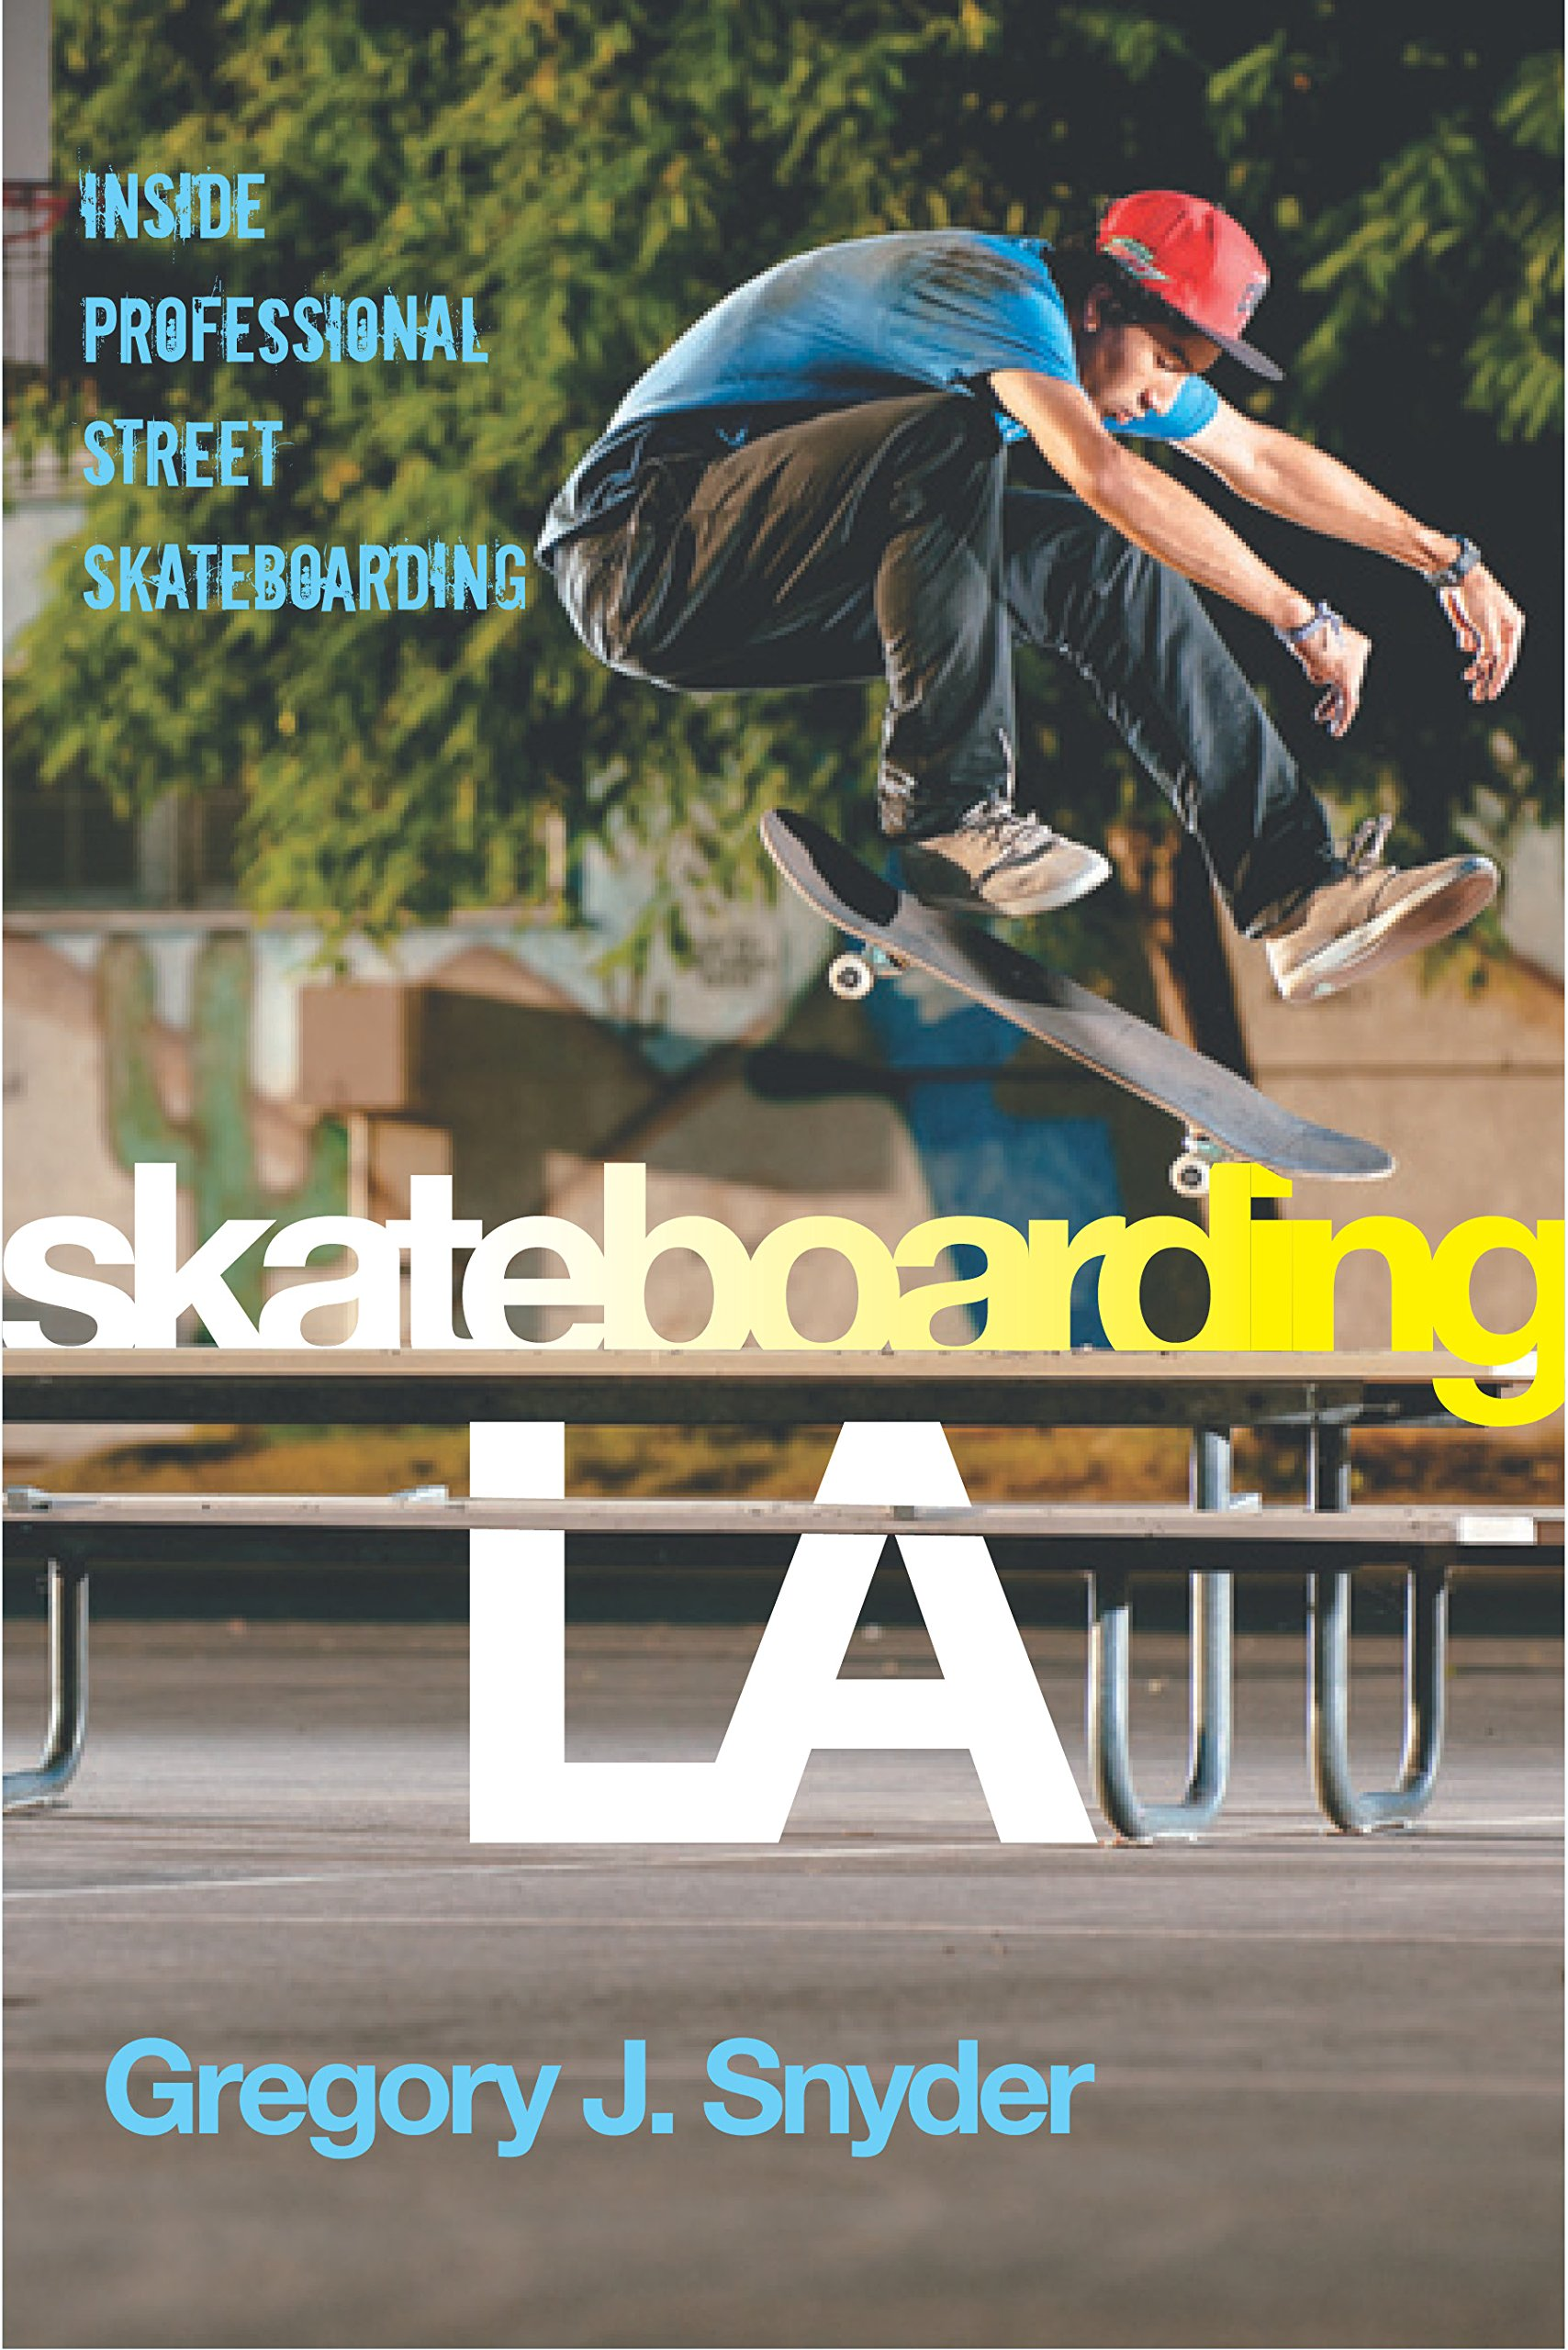 Image OfSkateboarding LA: Inside Professional Street Skateboarding (Alternative Criminology Book 10) (English Edition)